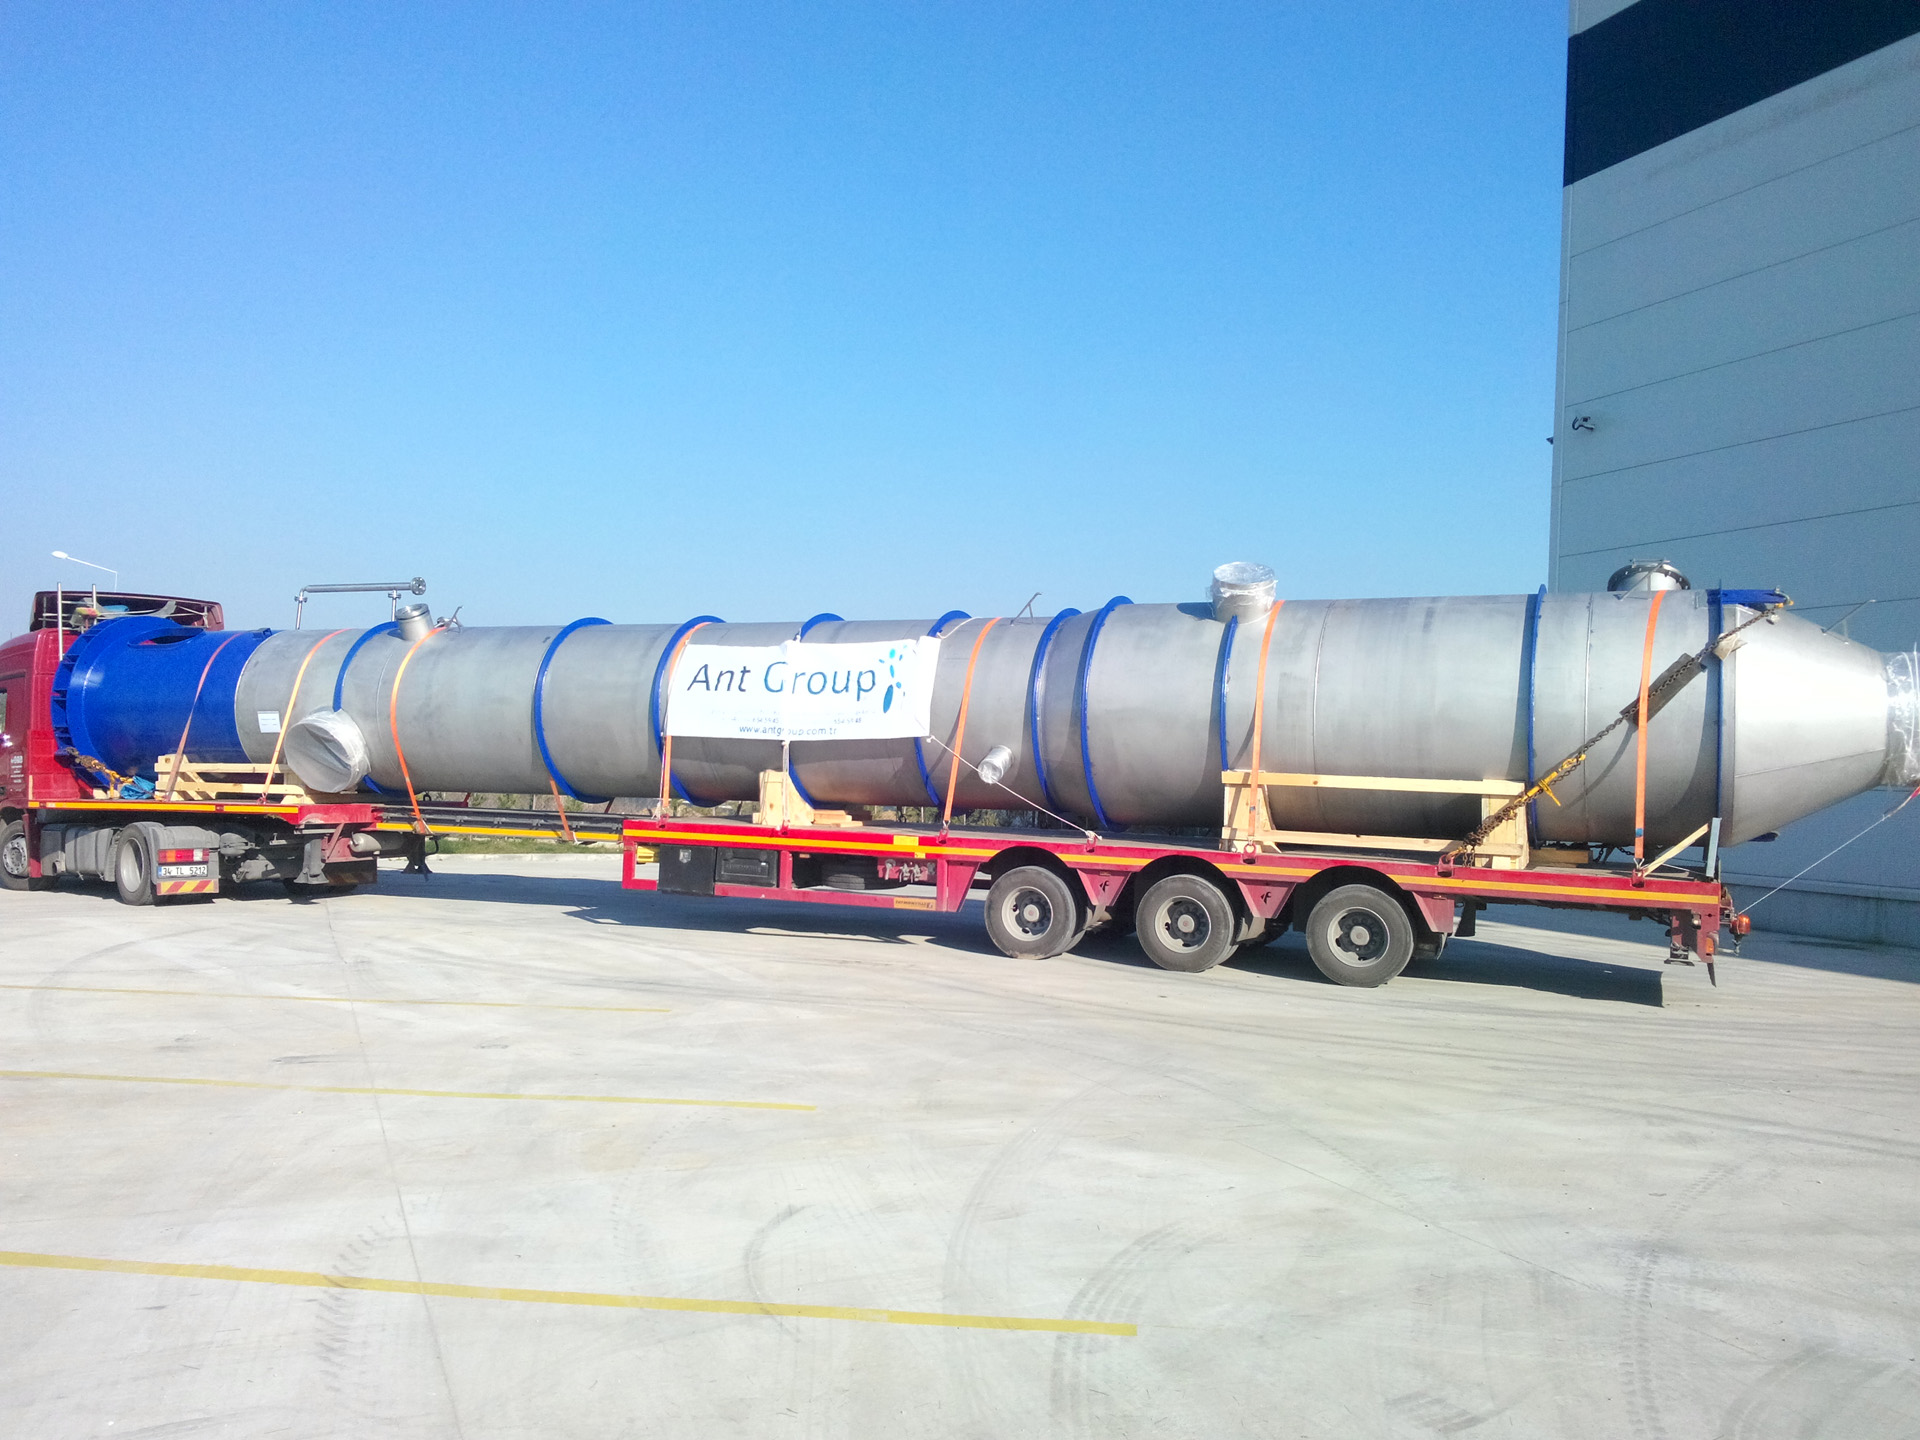 Stainless Steel Tanks & Various Equipment